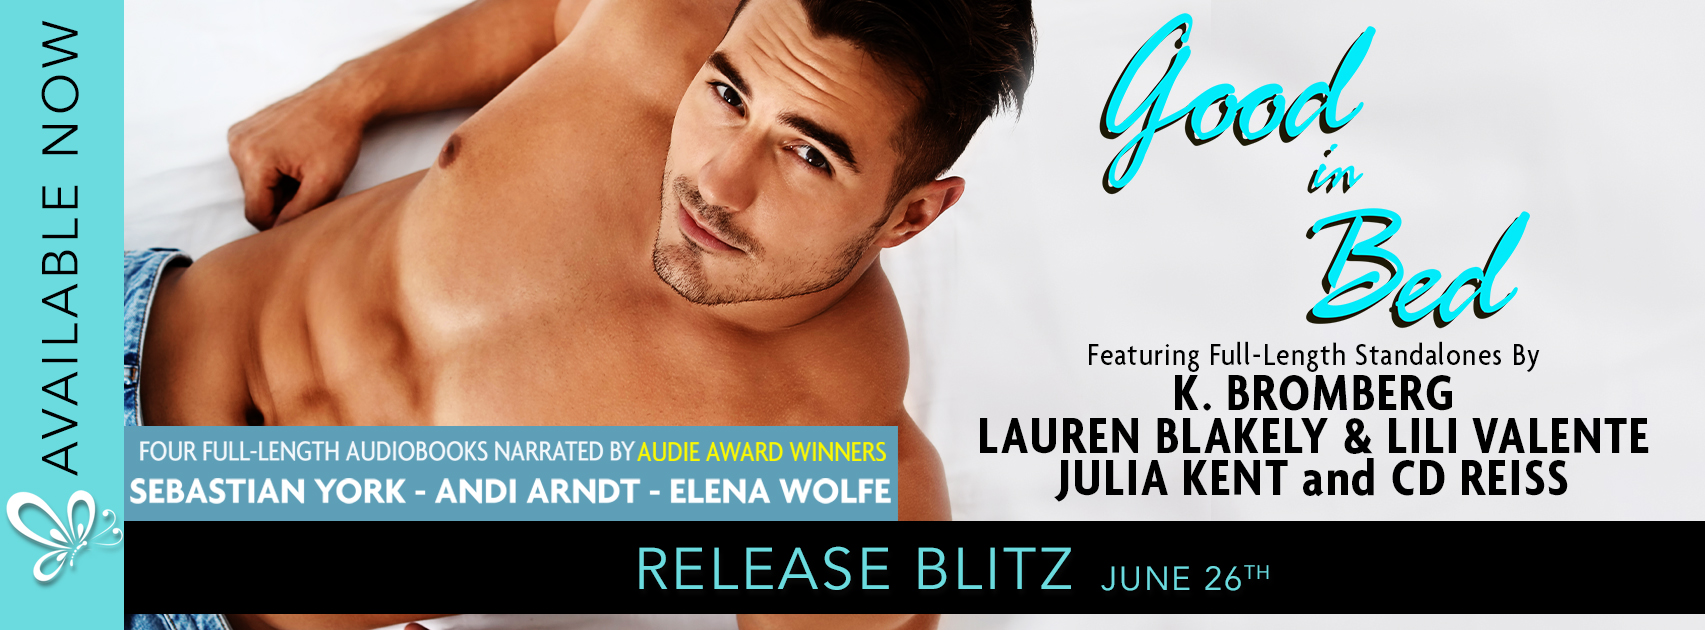 Release Blitz:  Good in Bed Audio Anthology